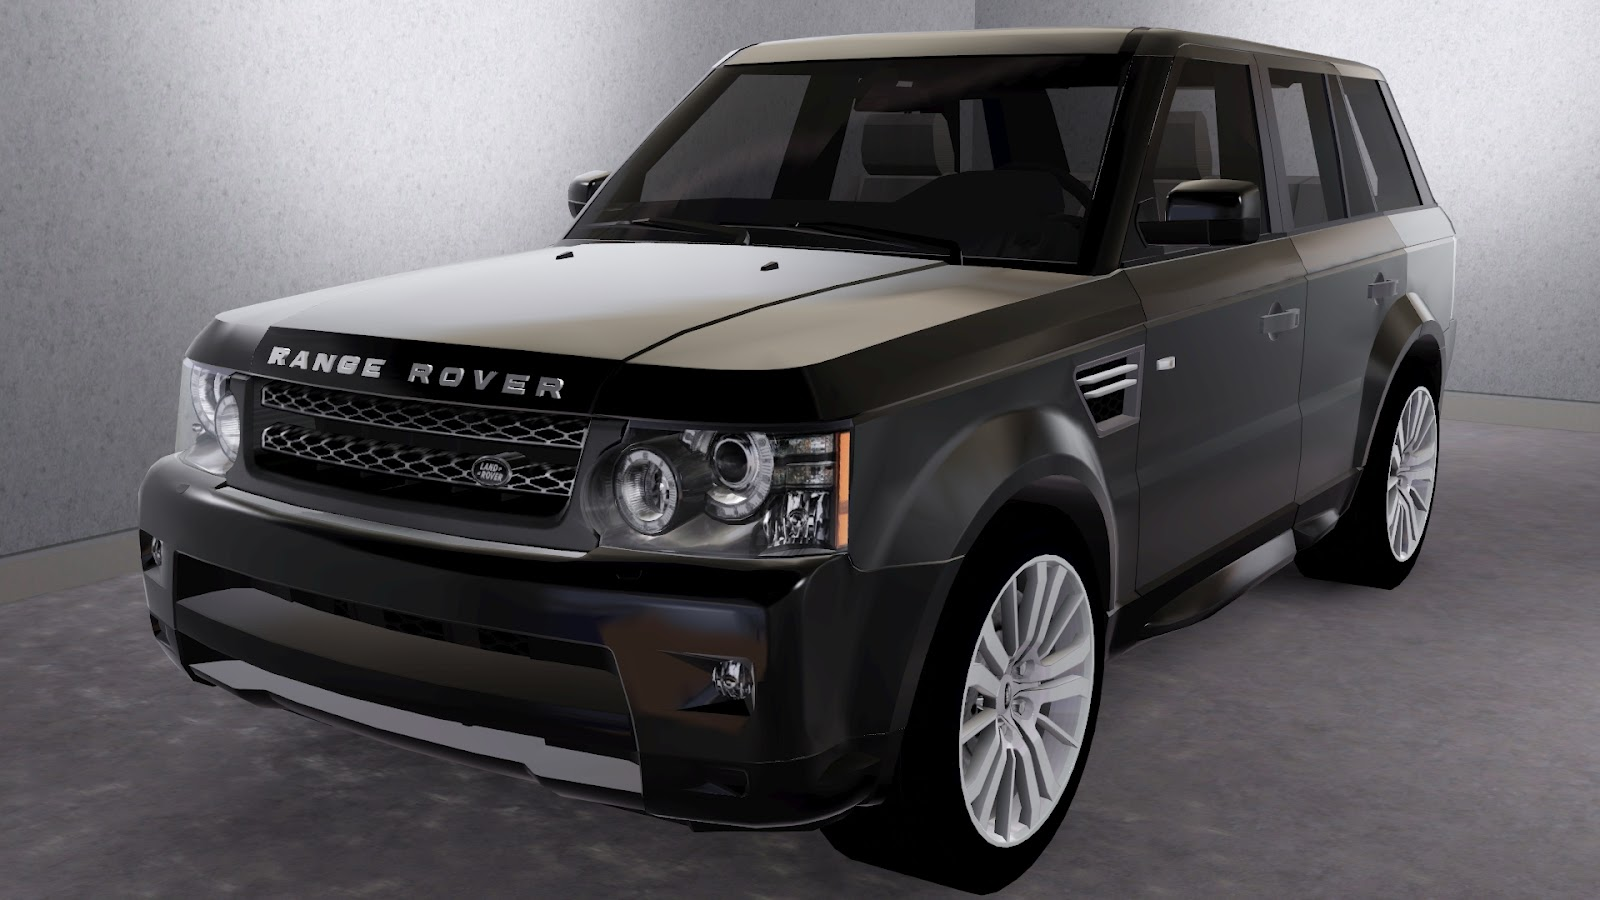 my sims 3 blog 2011 land rover range rover sport by fresh prince. Black Bedroom Furniture Sets. Home Design Ideas